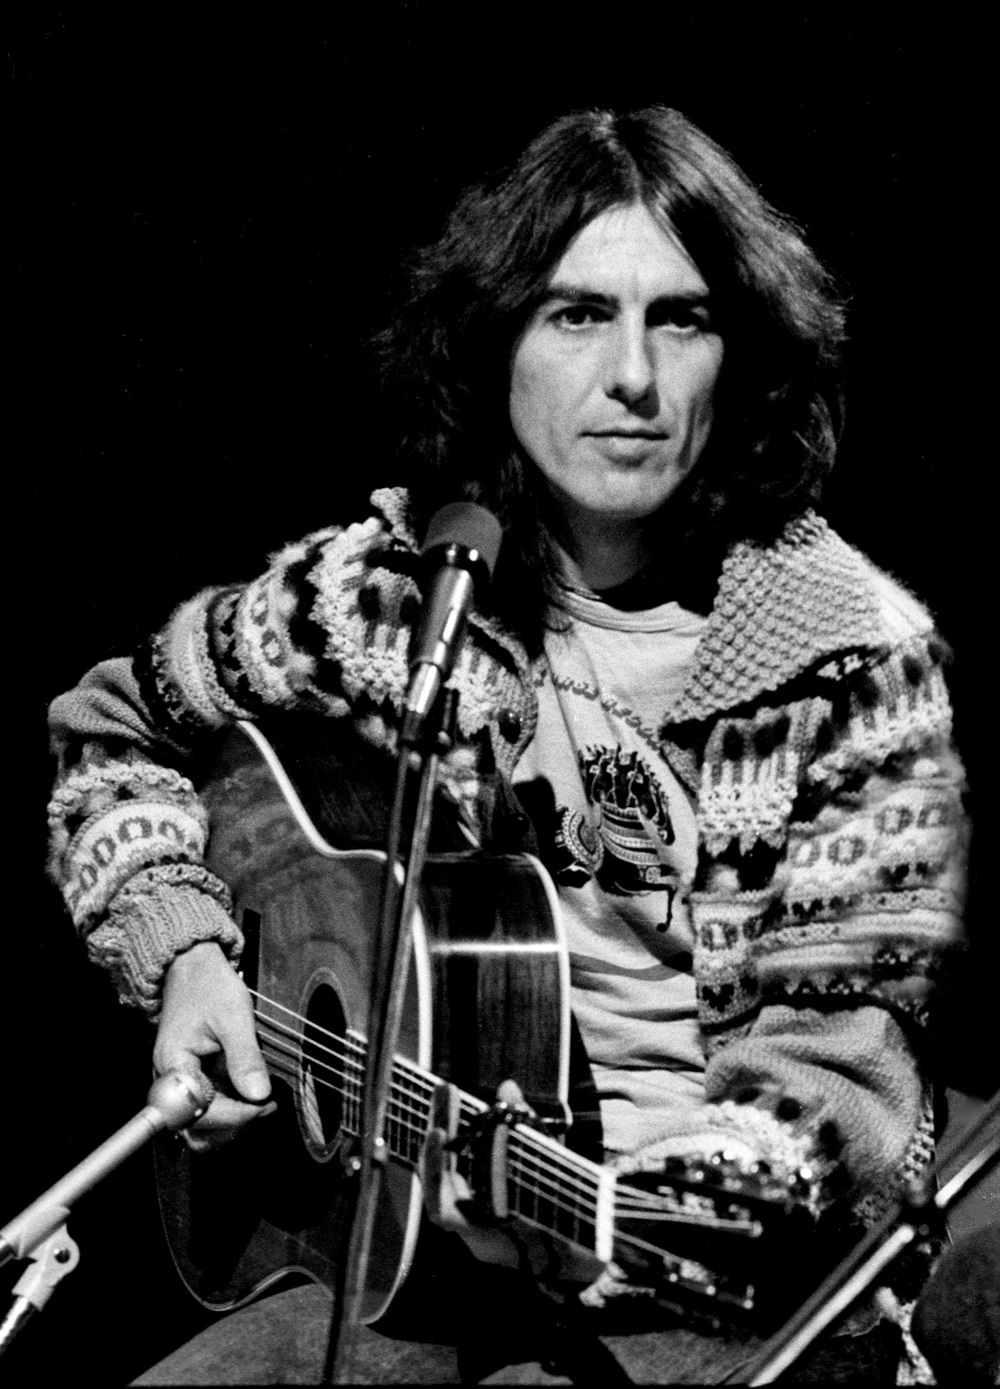 George Harrison on Saturday Night Live, 1976.